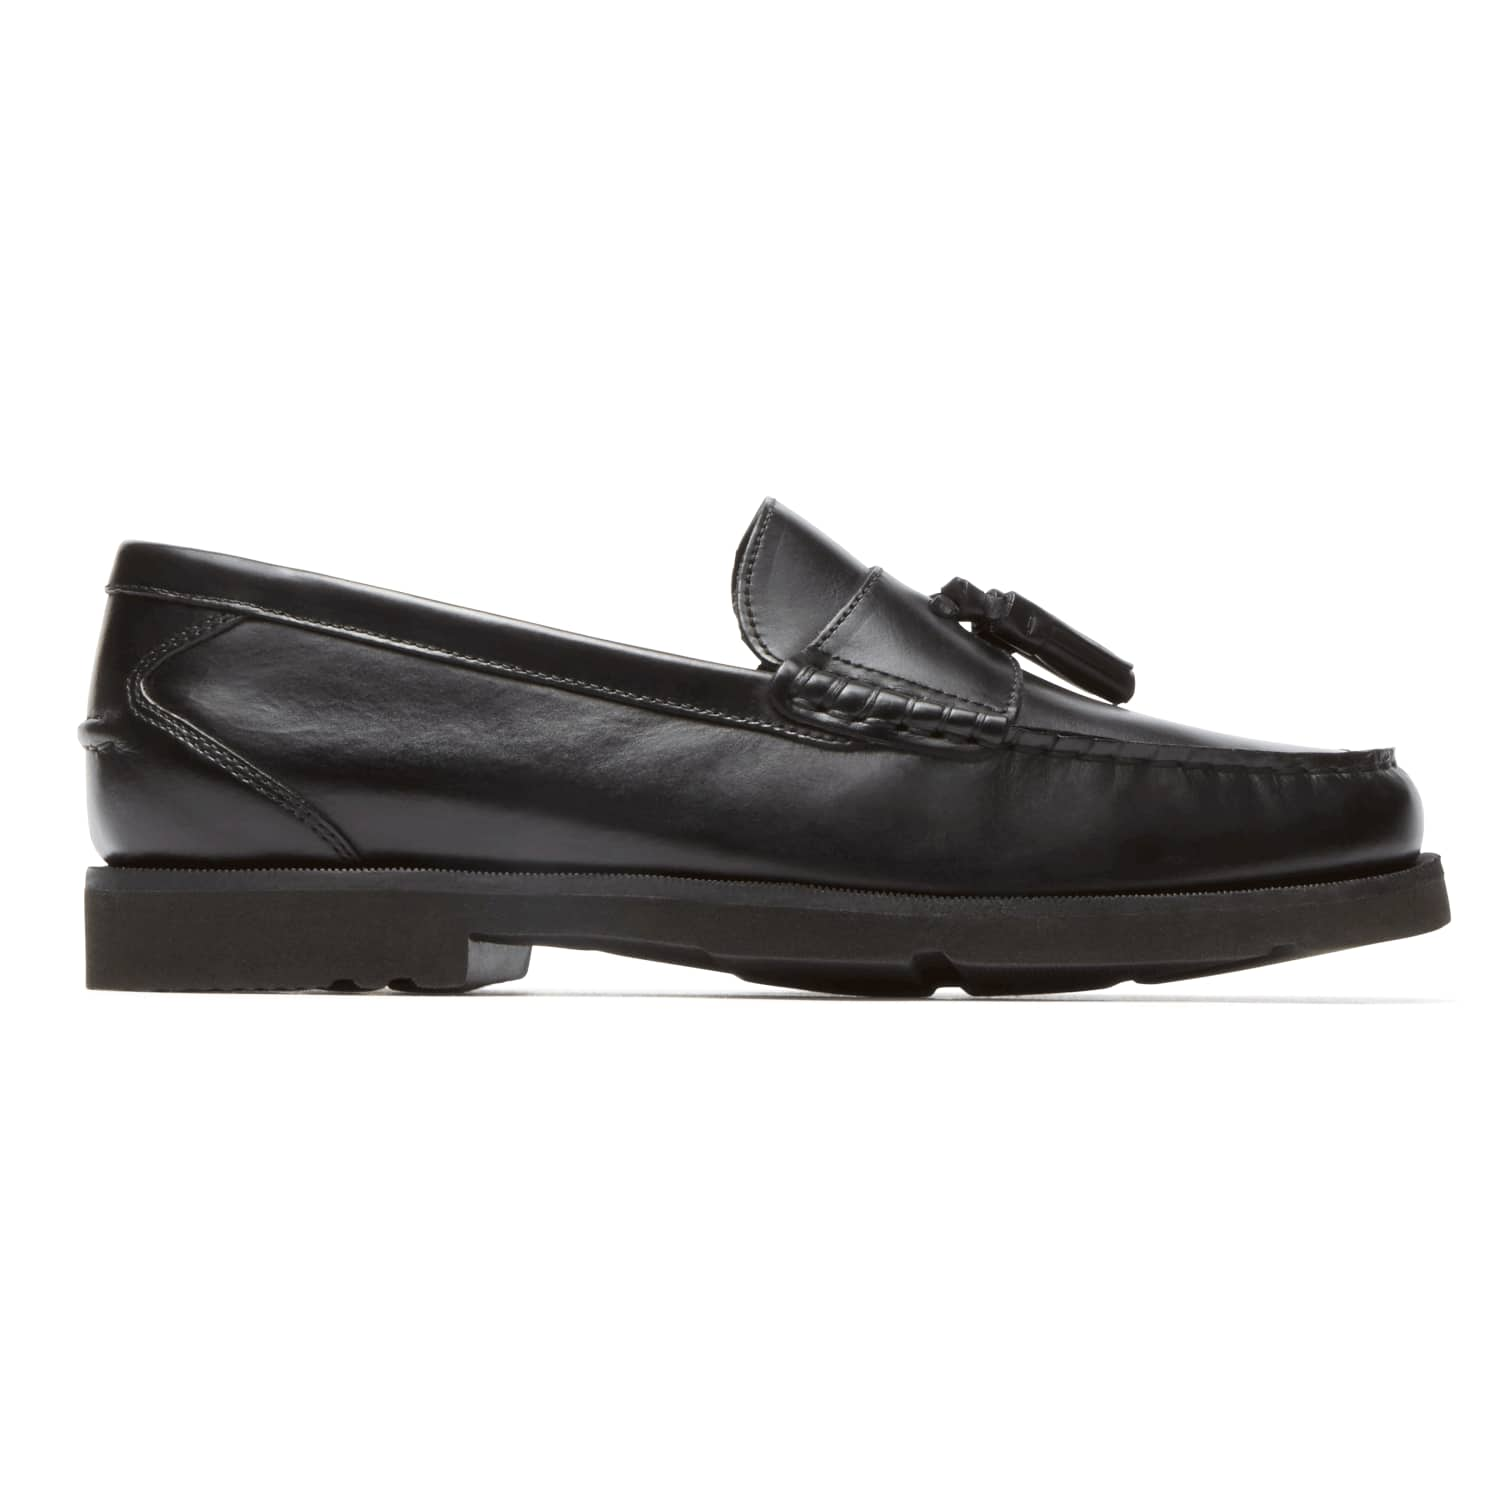 Rockport: Extra 40% Off 2 Pairs of Men's or Women's Shoes + Free Shipping